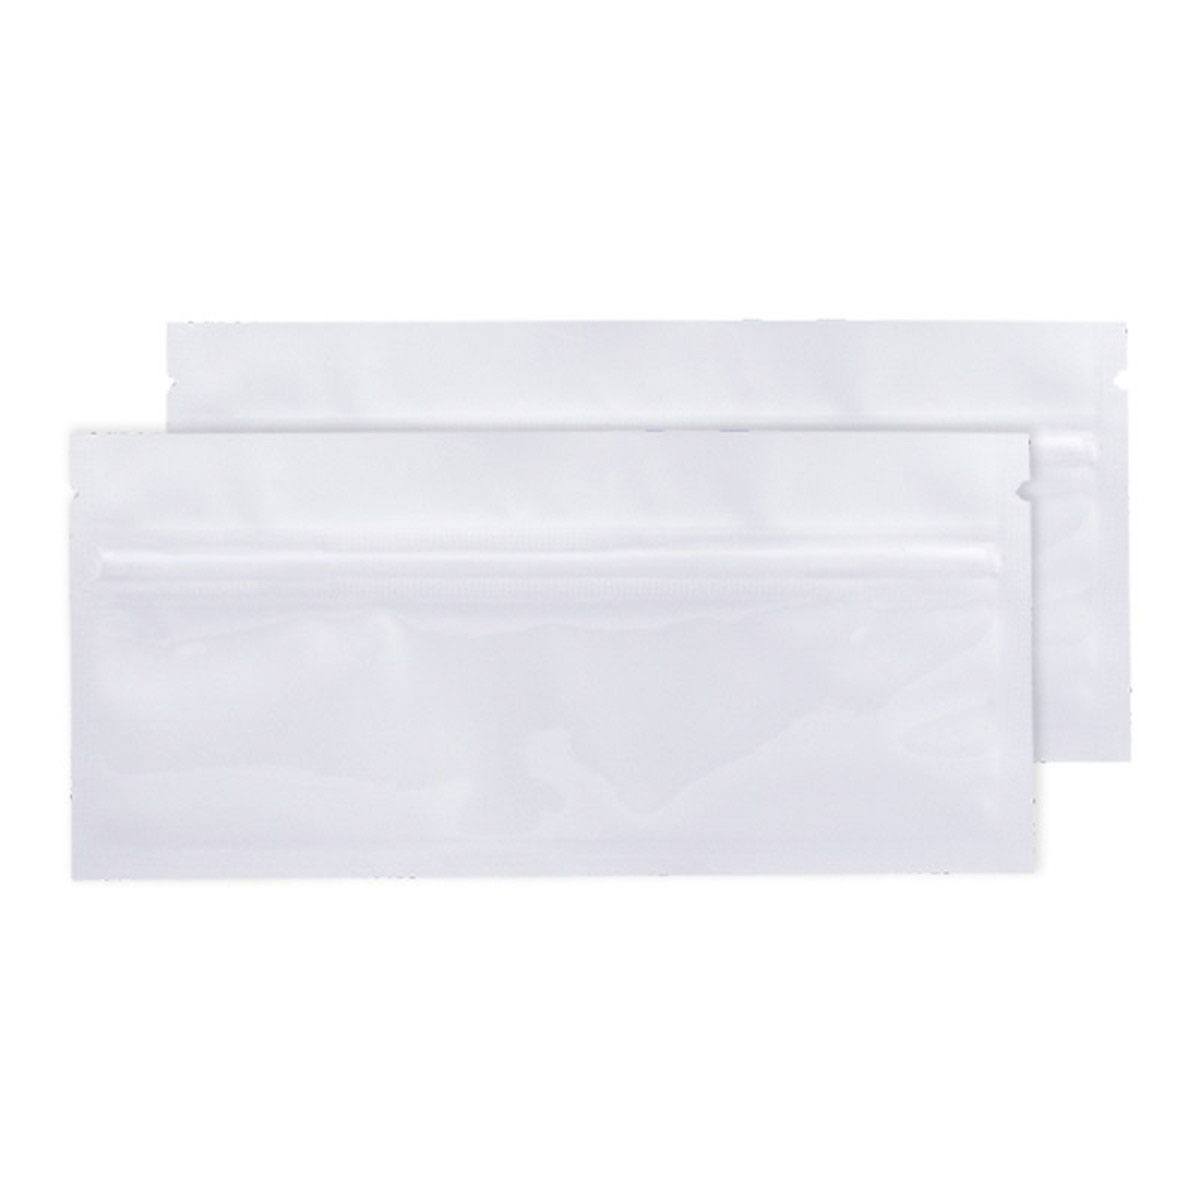 Pre-roll White Opaque Barrier Bags (100 Qty.)